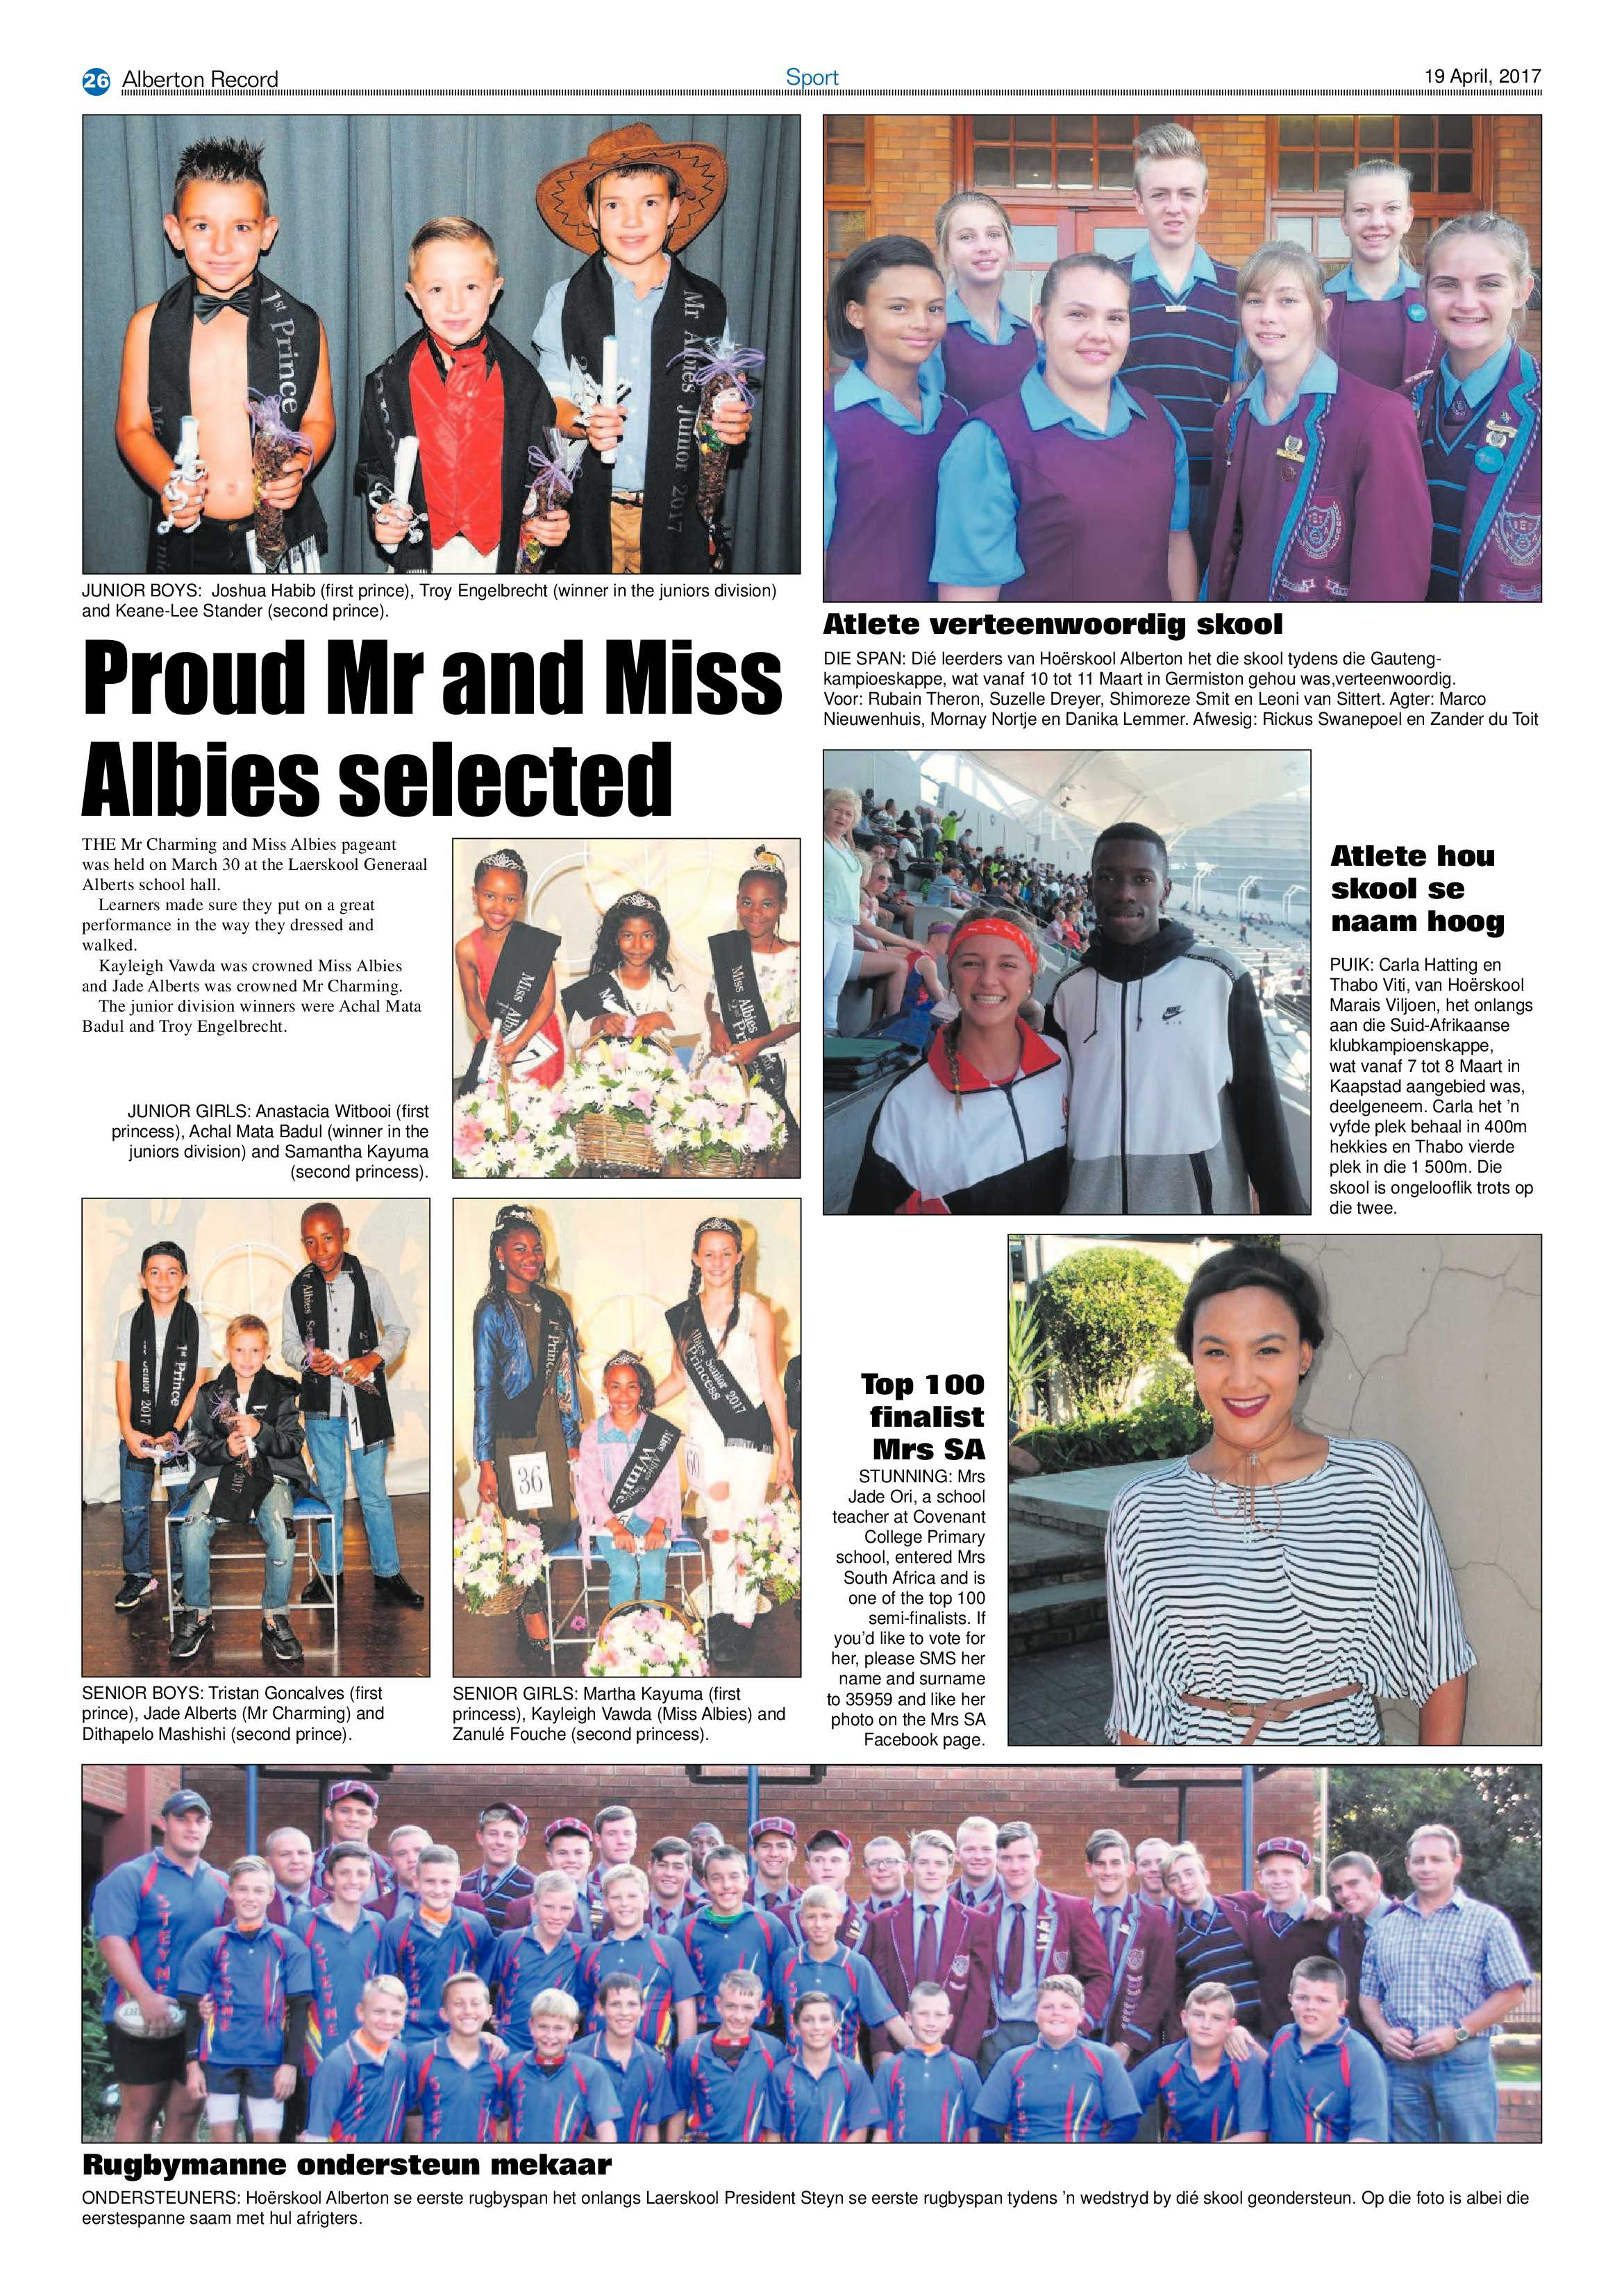 alberton-record-19-april-2017-epapers-page-26